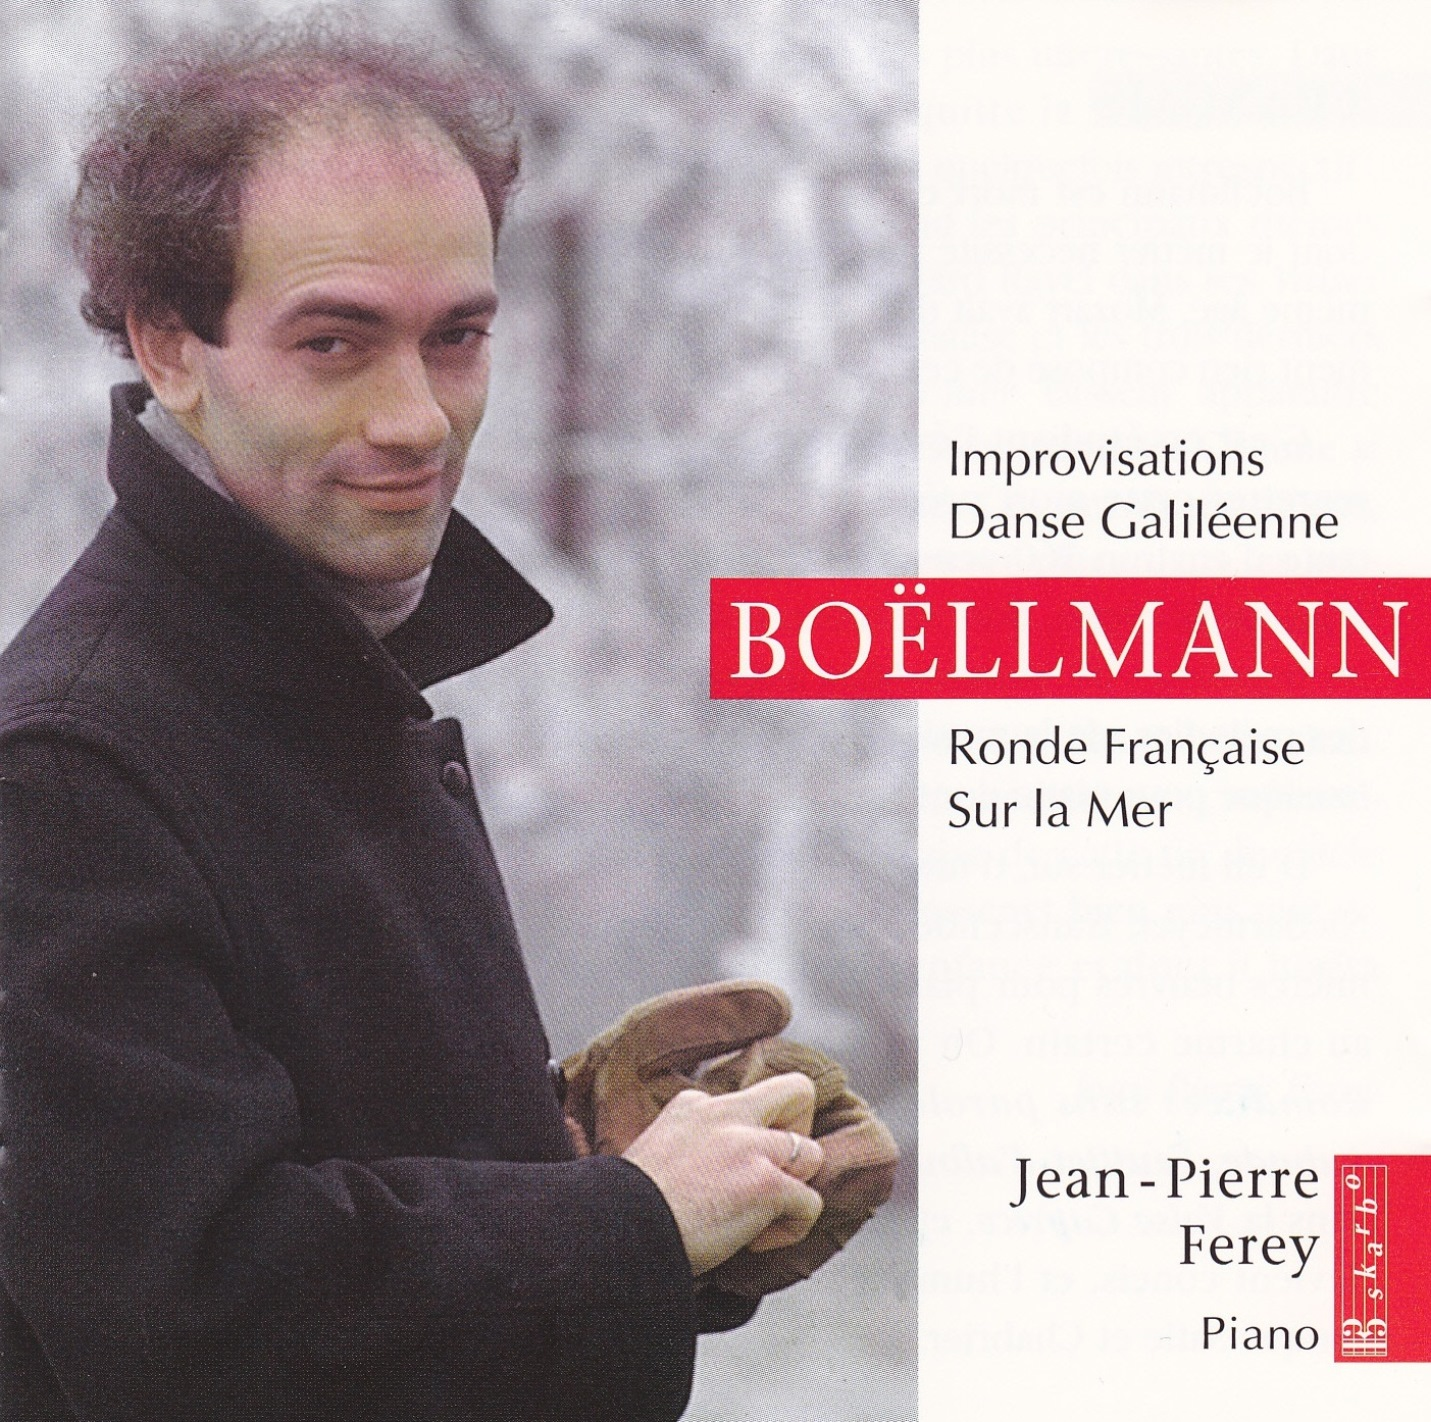 10 Improvisations, Op. 28, 10 Improvisations, Op. 28: Improvisation No. 9